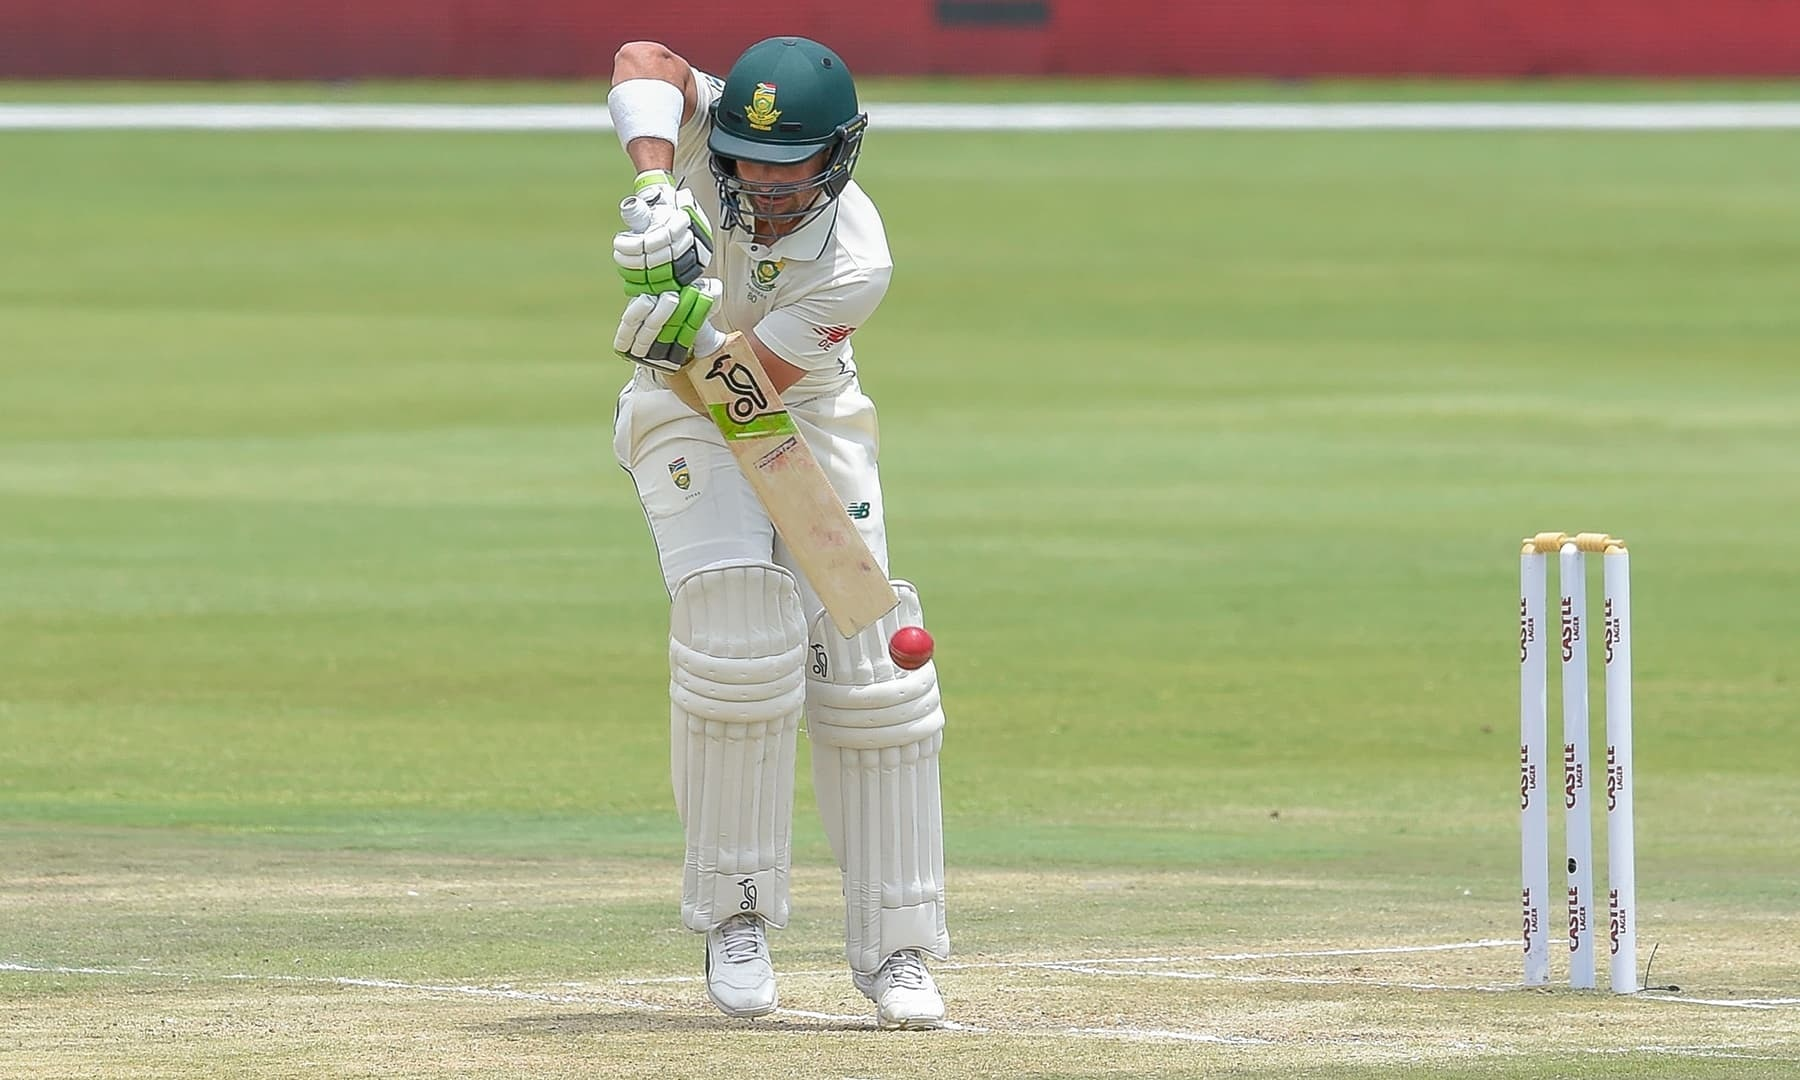 SACA are embroiled in a court battle with CSA over plans to restructure the local game, expanding it from six domestic franchises to 12, but which could mean a reduction in earnings for players. – AFP/ FIle